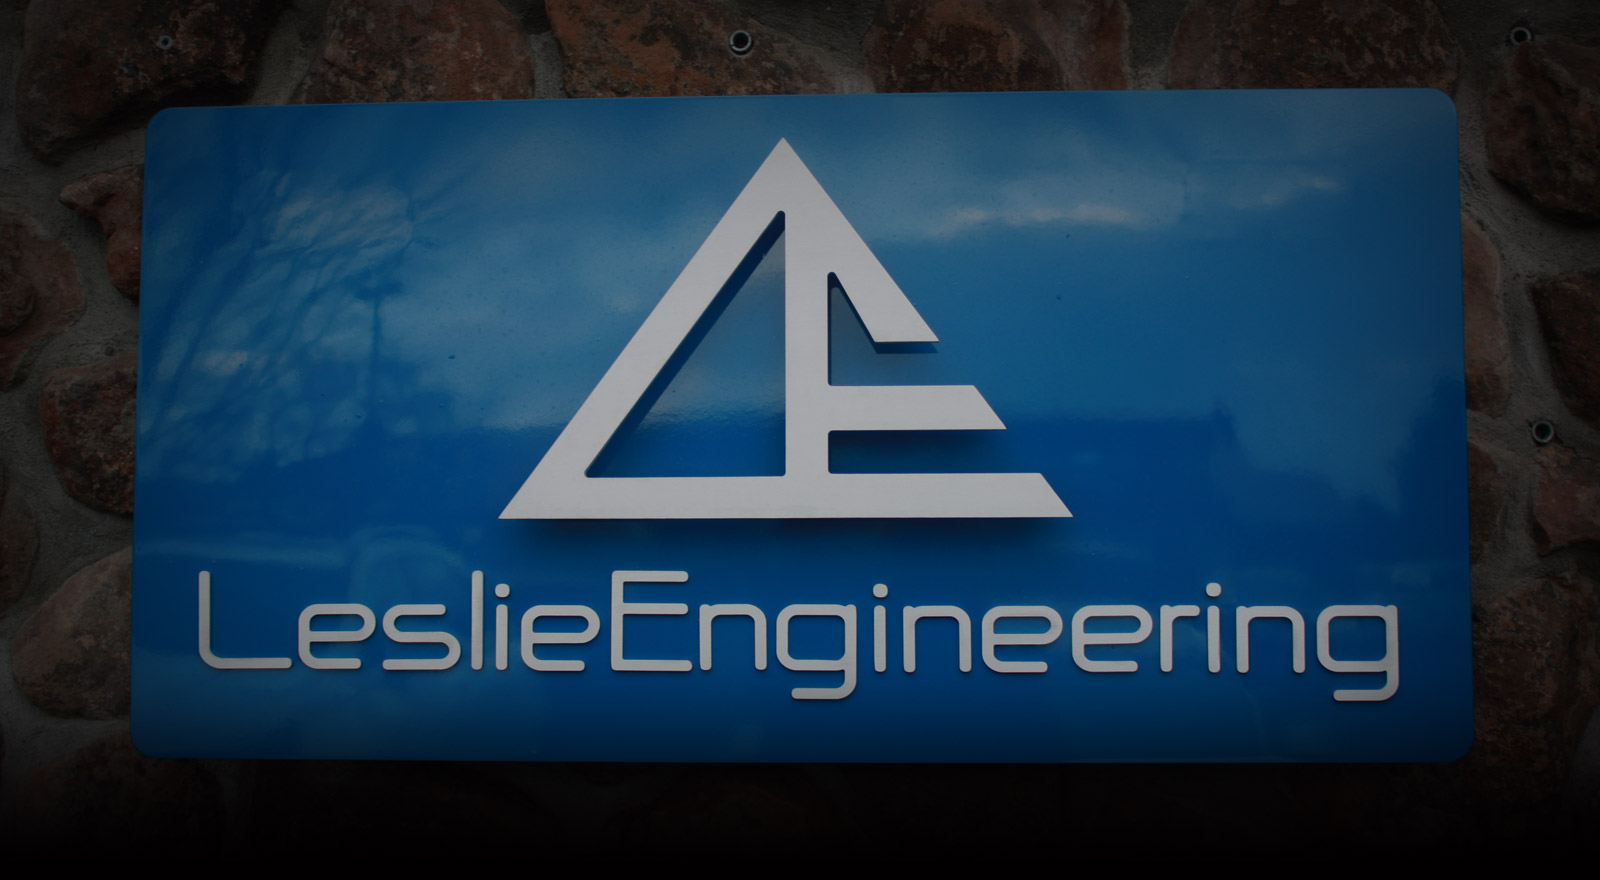 Leslie Engineering